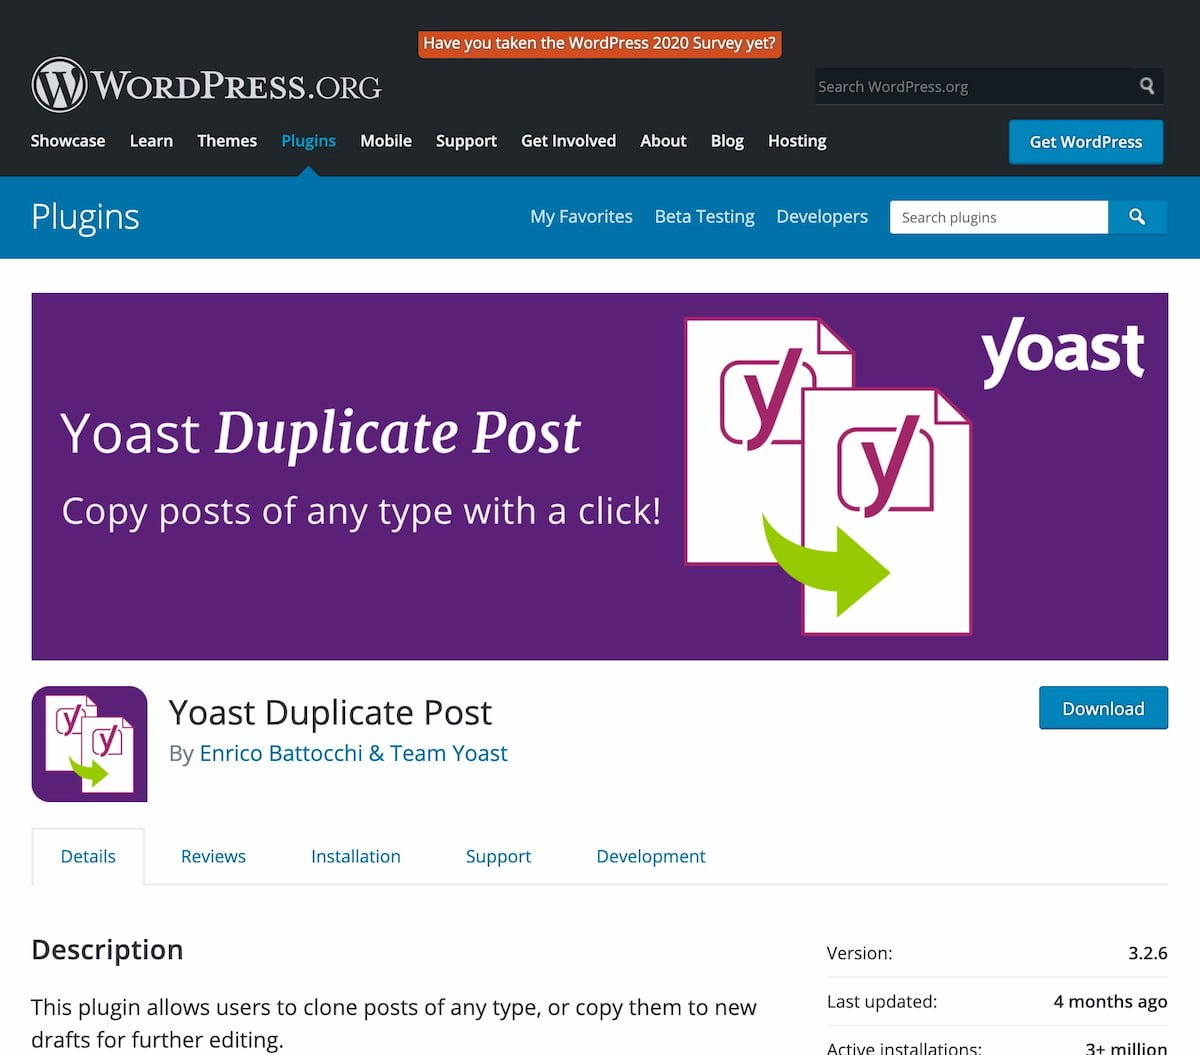 yoast duplicate post wordpress